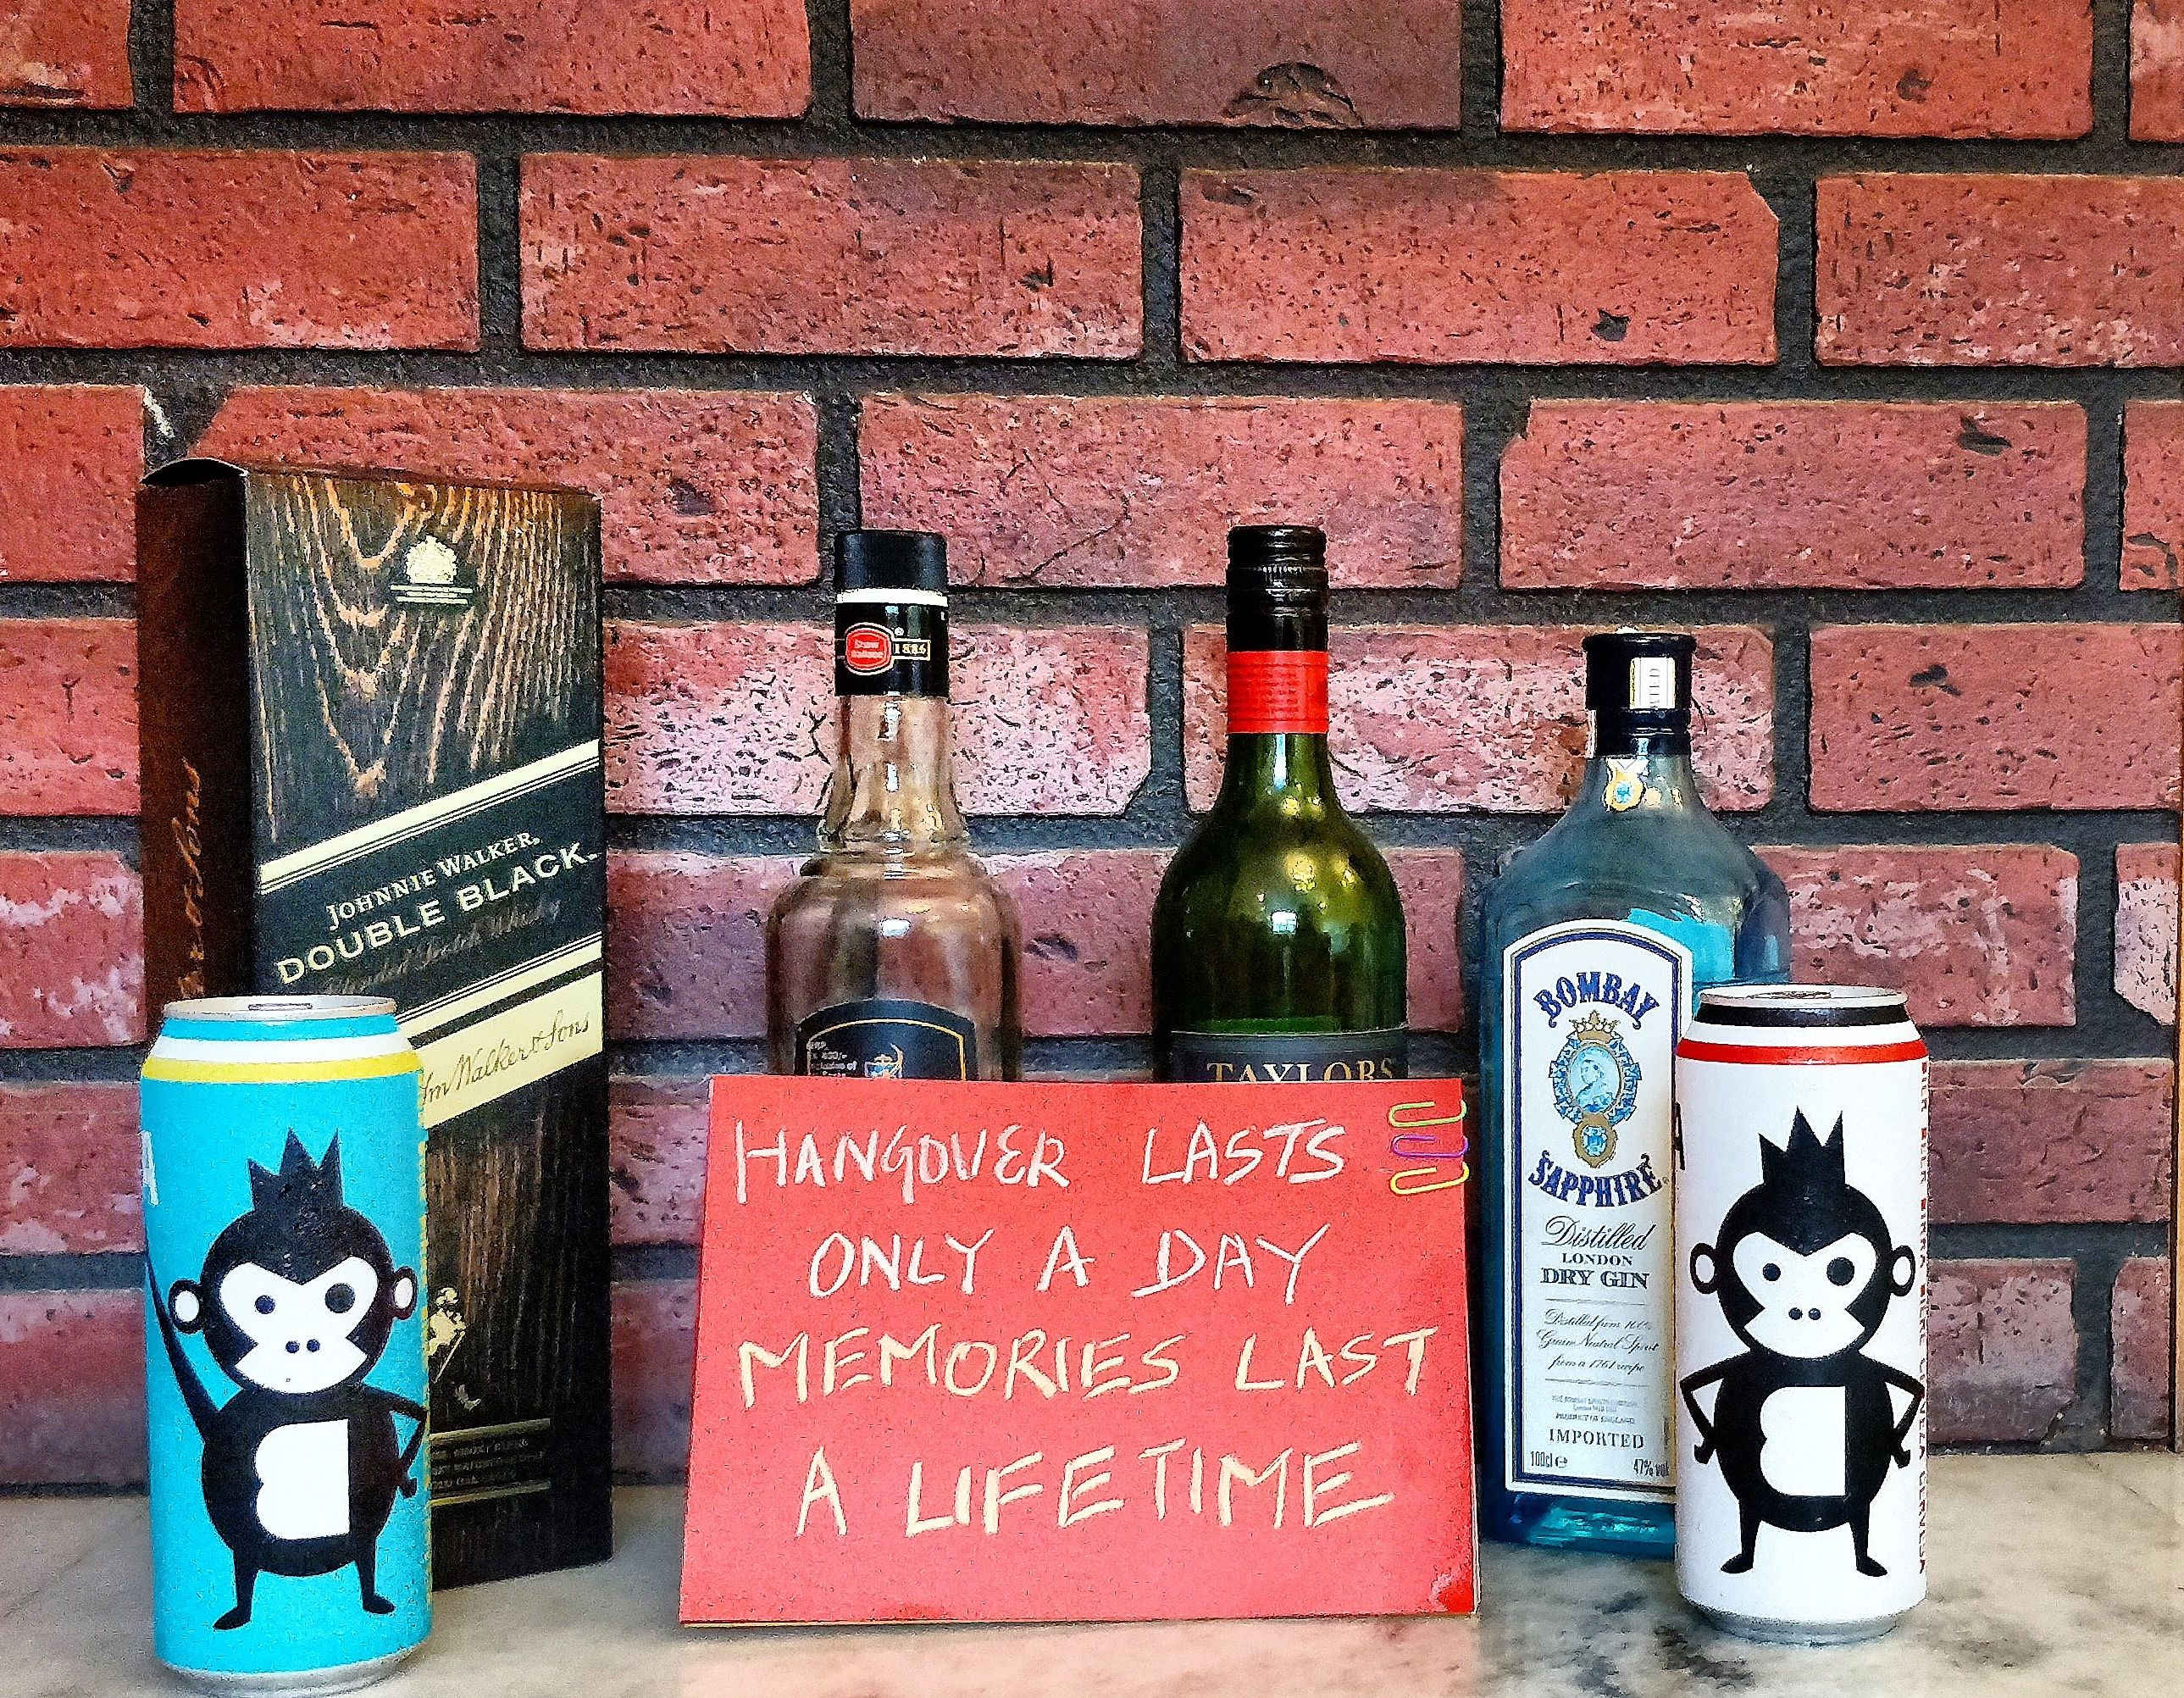 Pin By Drinks Nucleus On Indian Beer Bira 91 With The Famous Monkey Non Alcoholic Drinks Alcoholic Drinks Wine Bottle